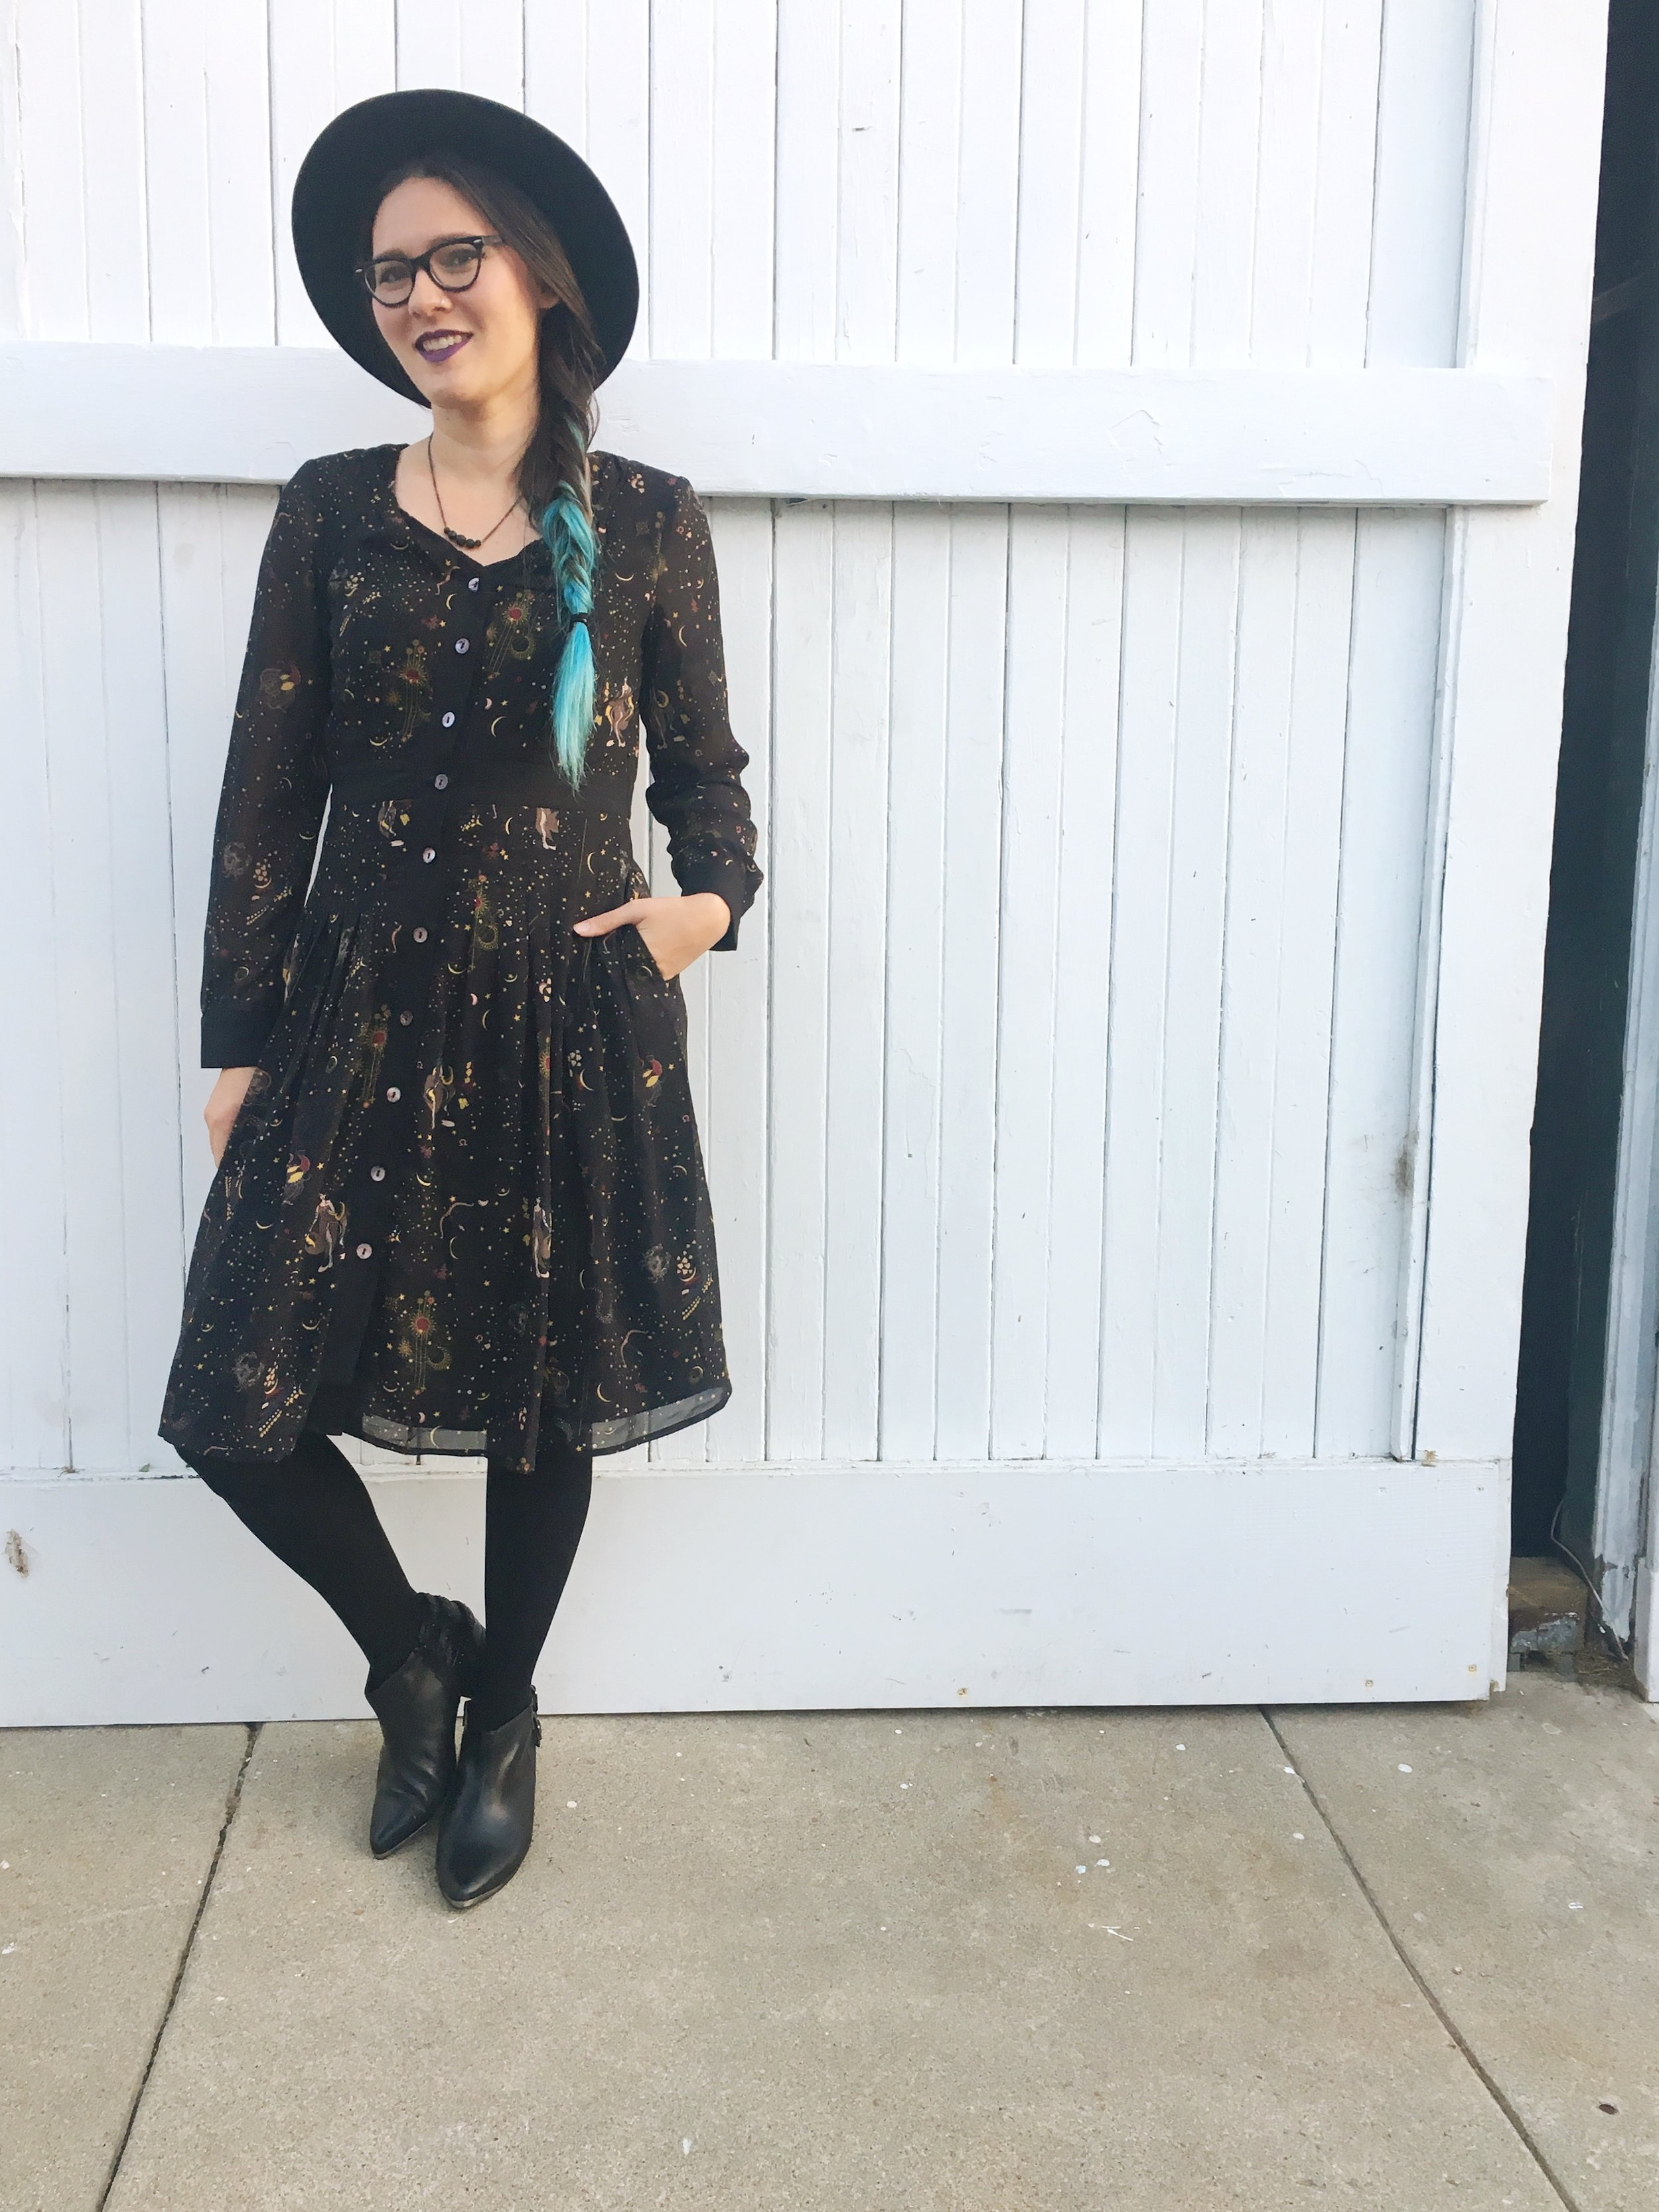 On Clothes and Confidence - Feat. Eshakti